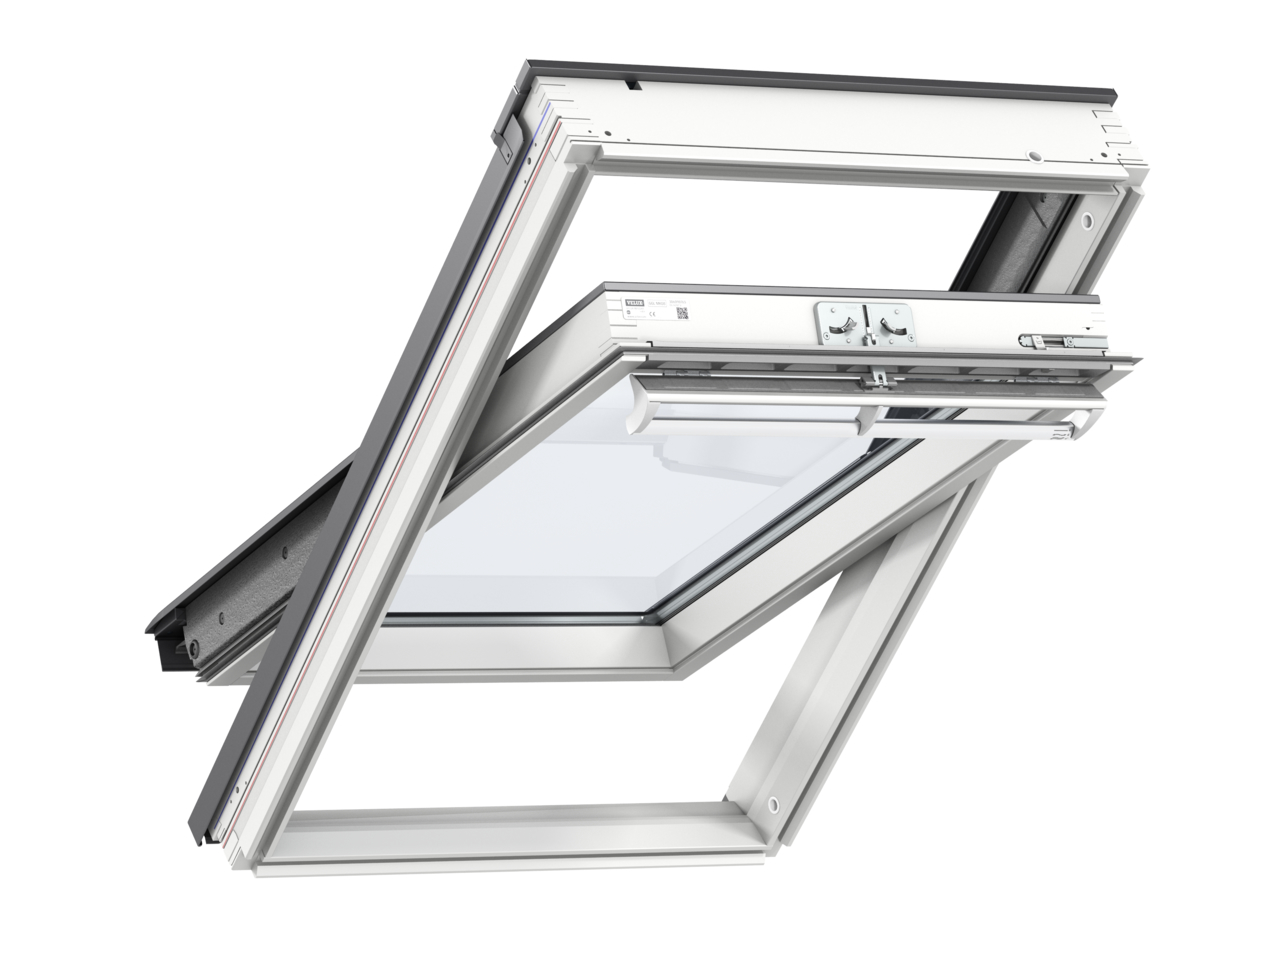 Velux GGL CK06 550 x 1180mm Centre Pivot Standard 70Pane Roof Window - White Painted